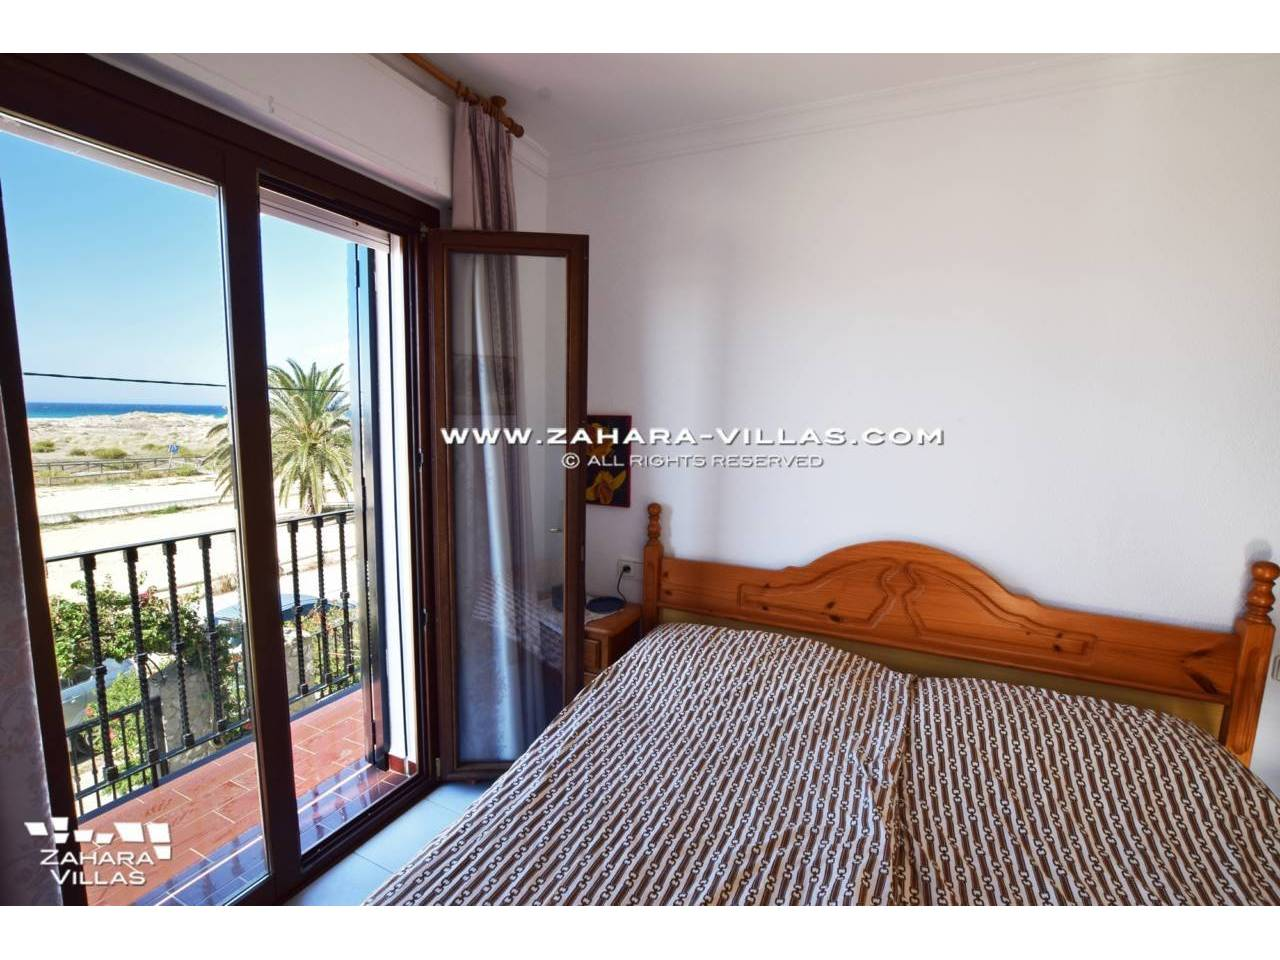 Imagen 5 de House for sale on the front beach, with sea views in Zahara de los Atunes